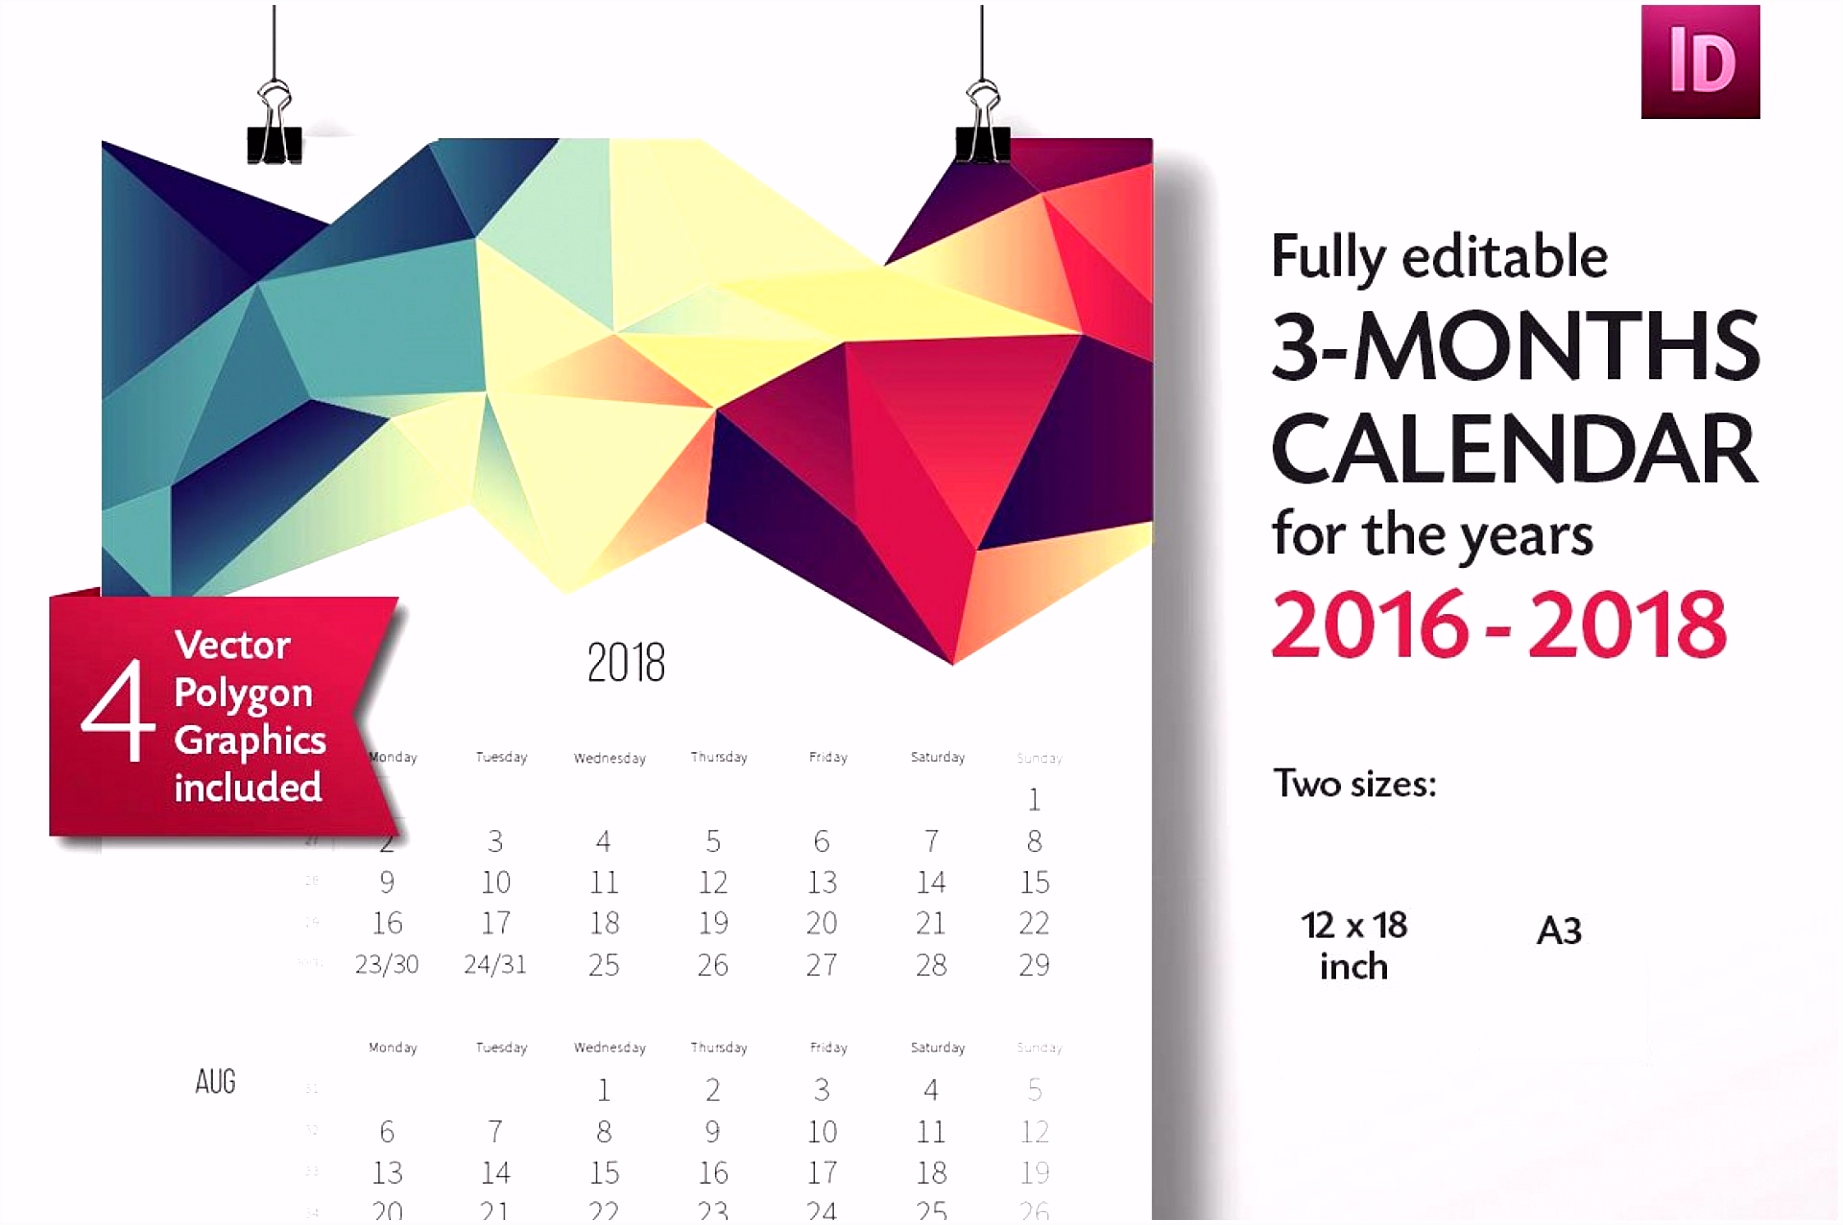 019 Calendar Template Indesign Ideas Erfreut Kalender Vorlage